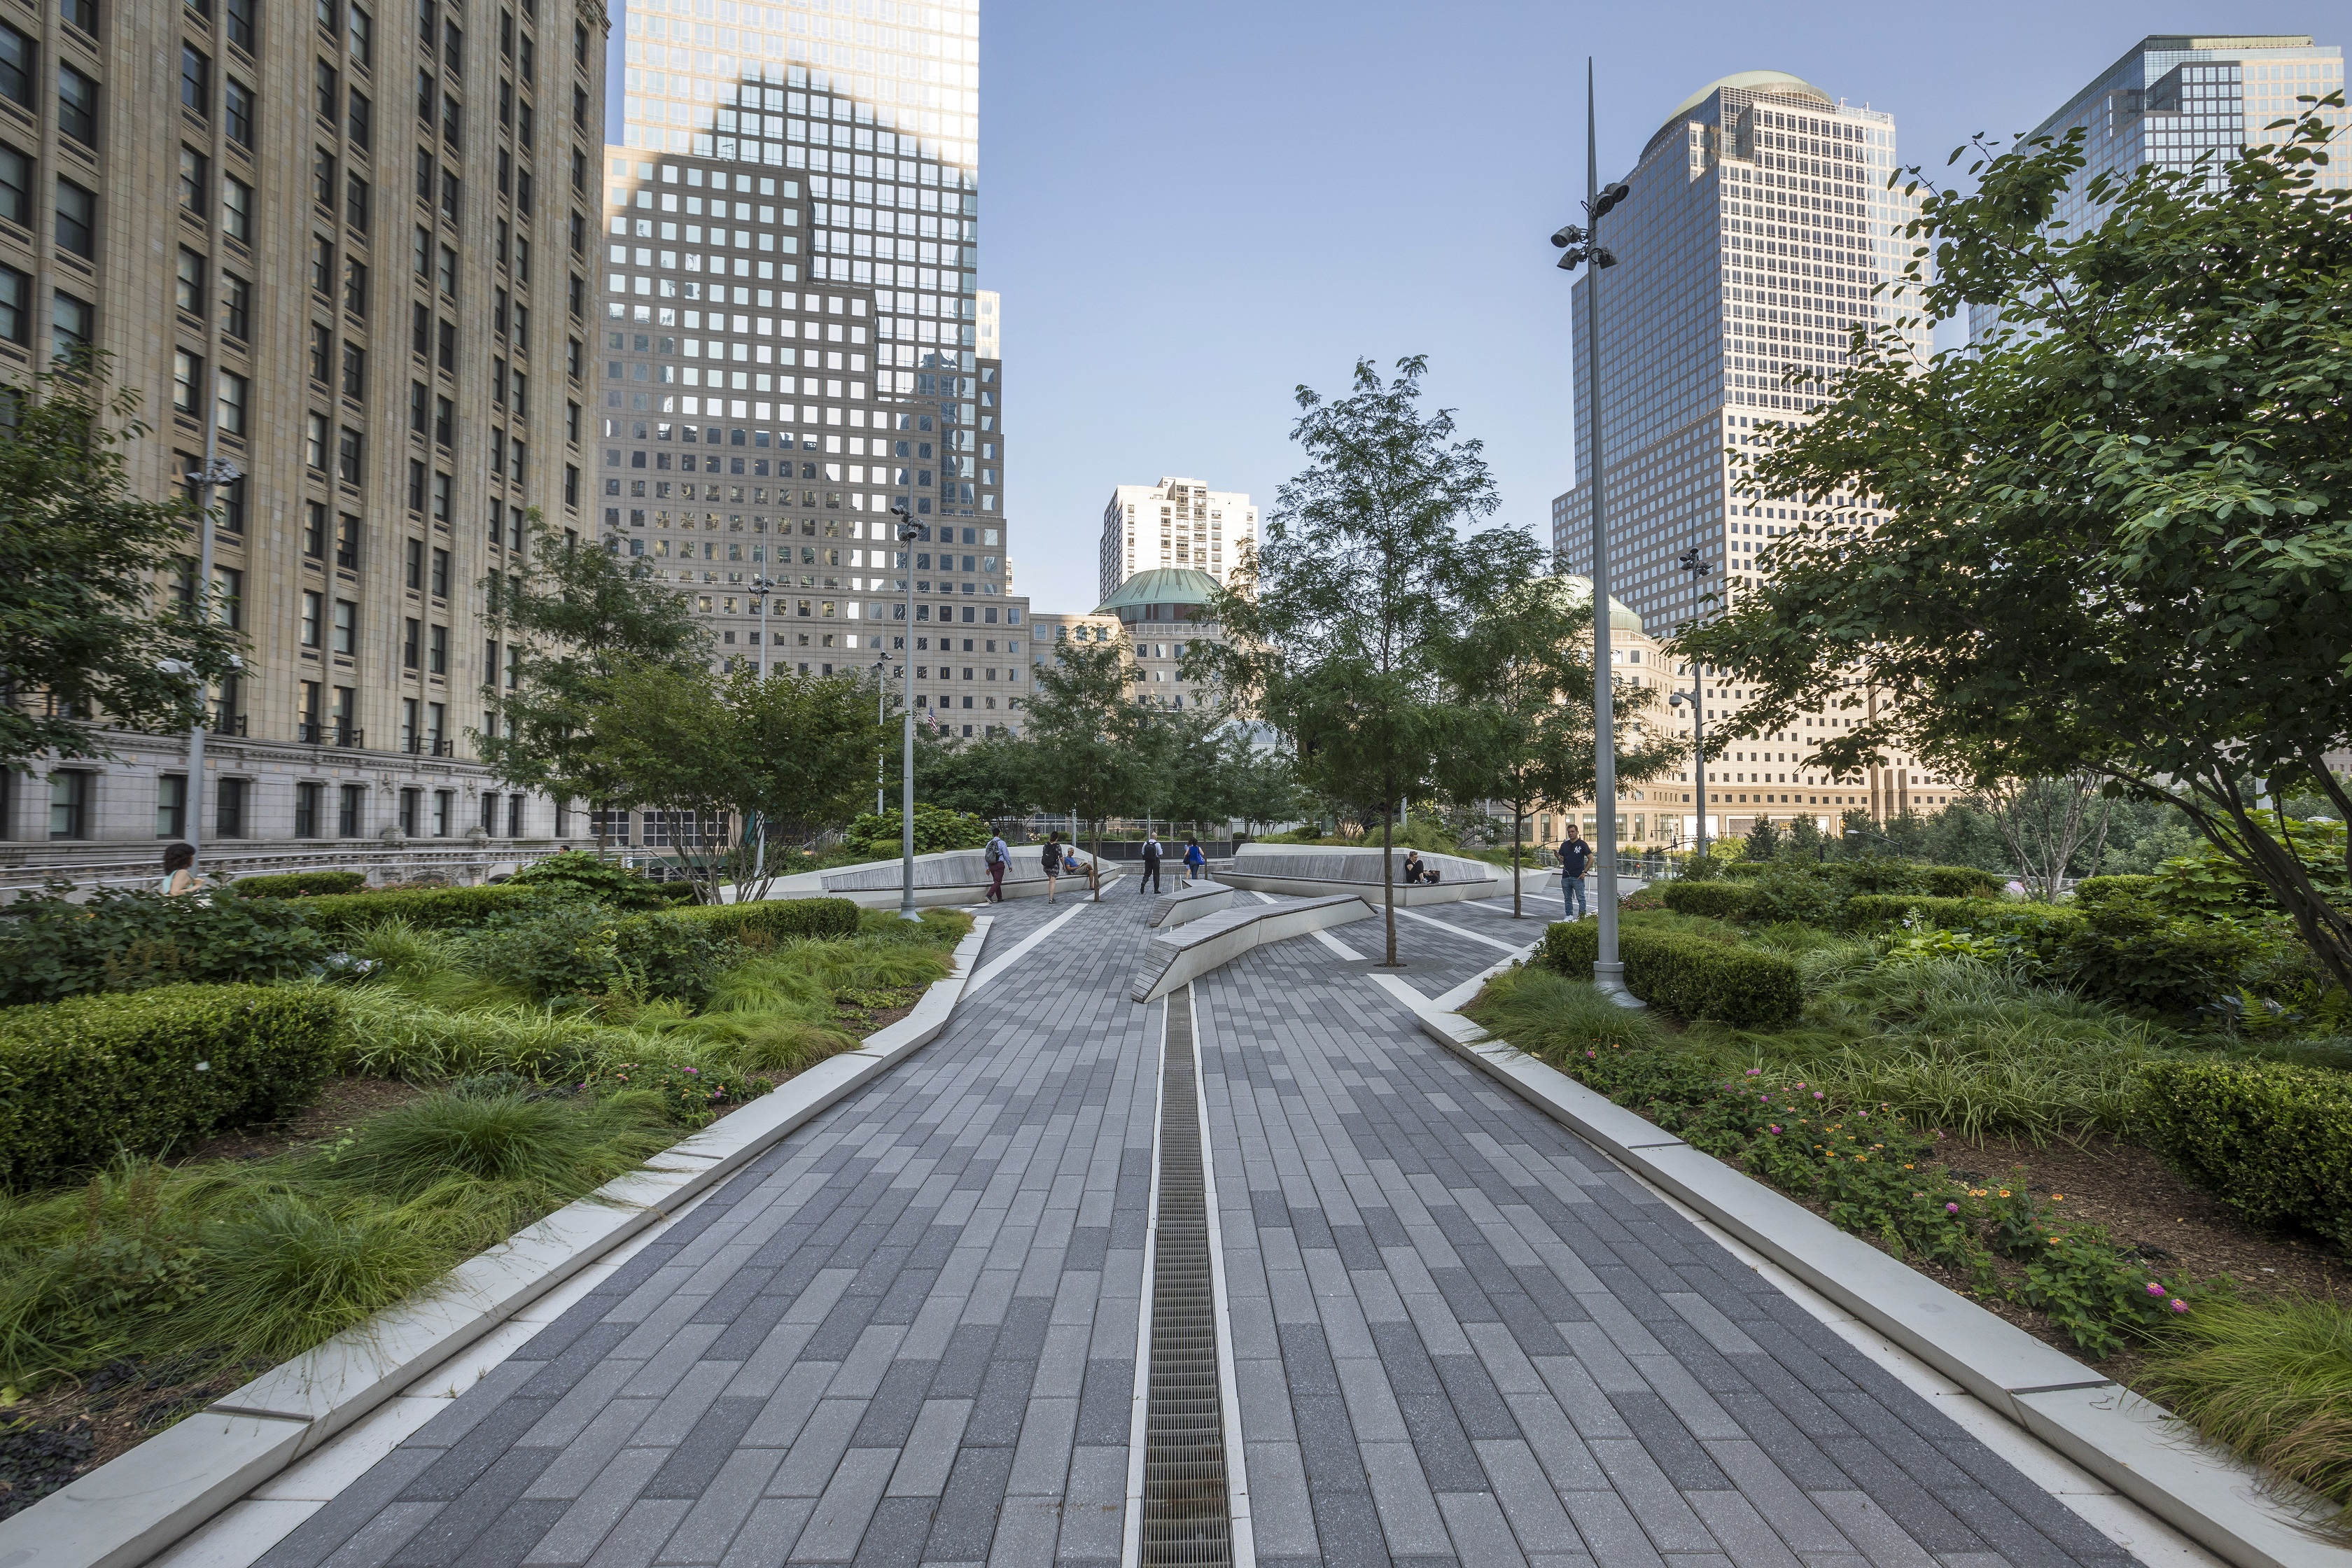 The sharp angles and clean lines cutting through this one-acre elevated park encourages passersby to stop and reflect.